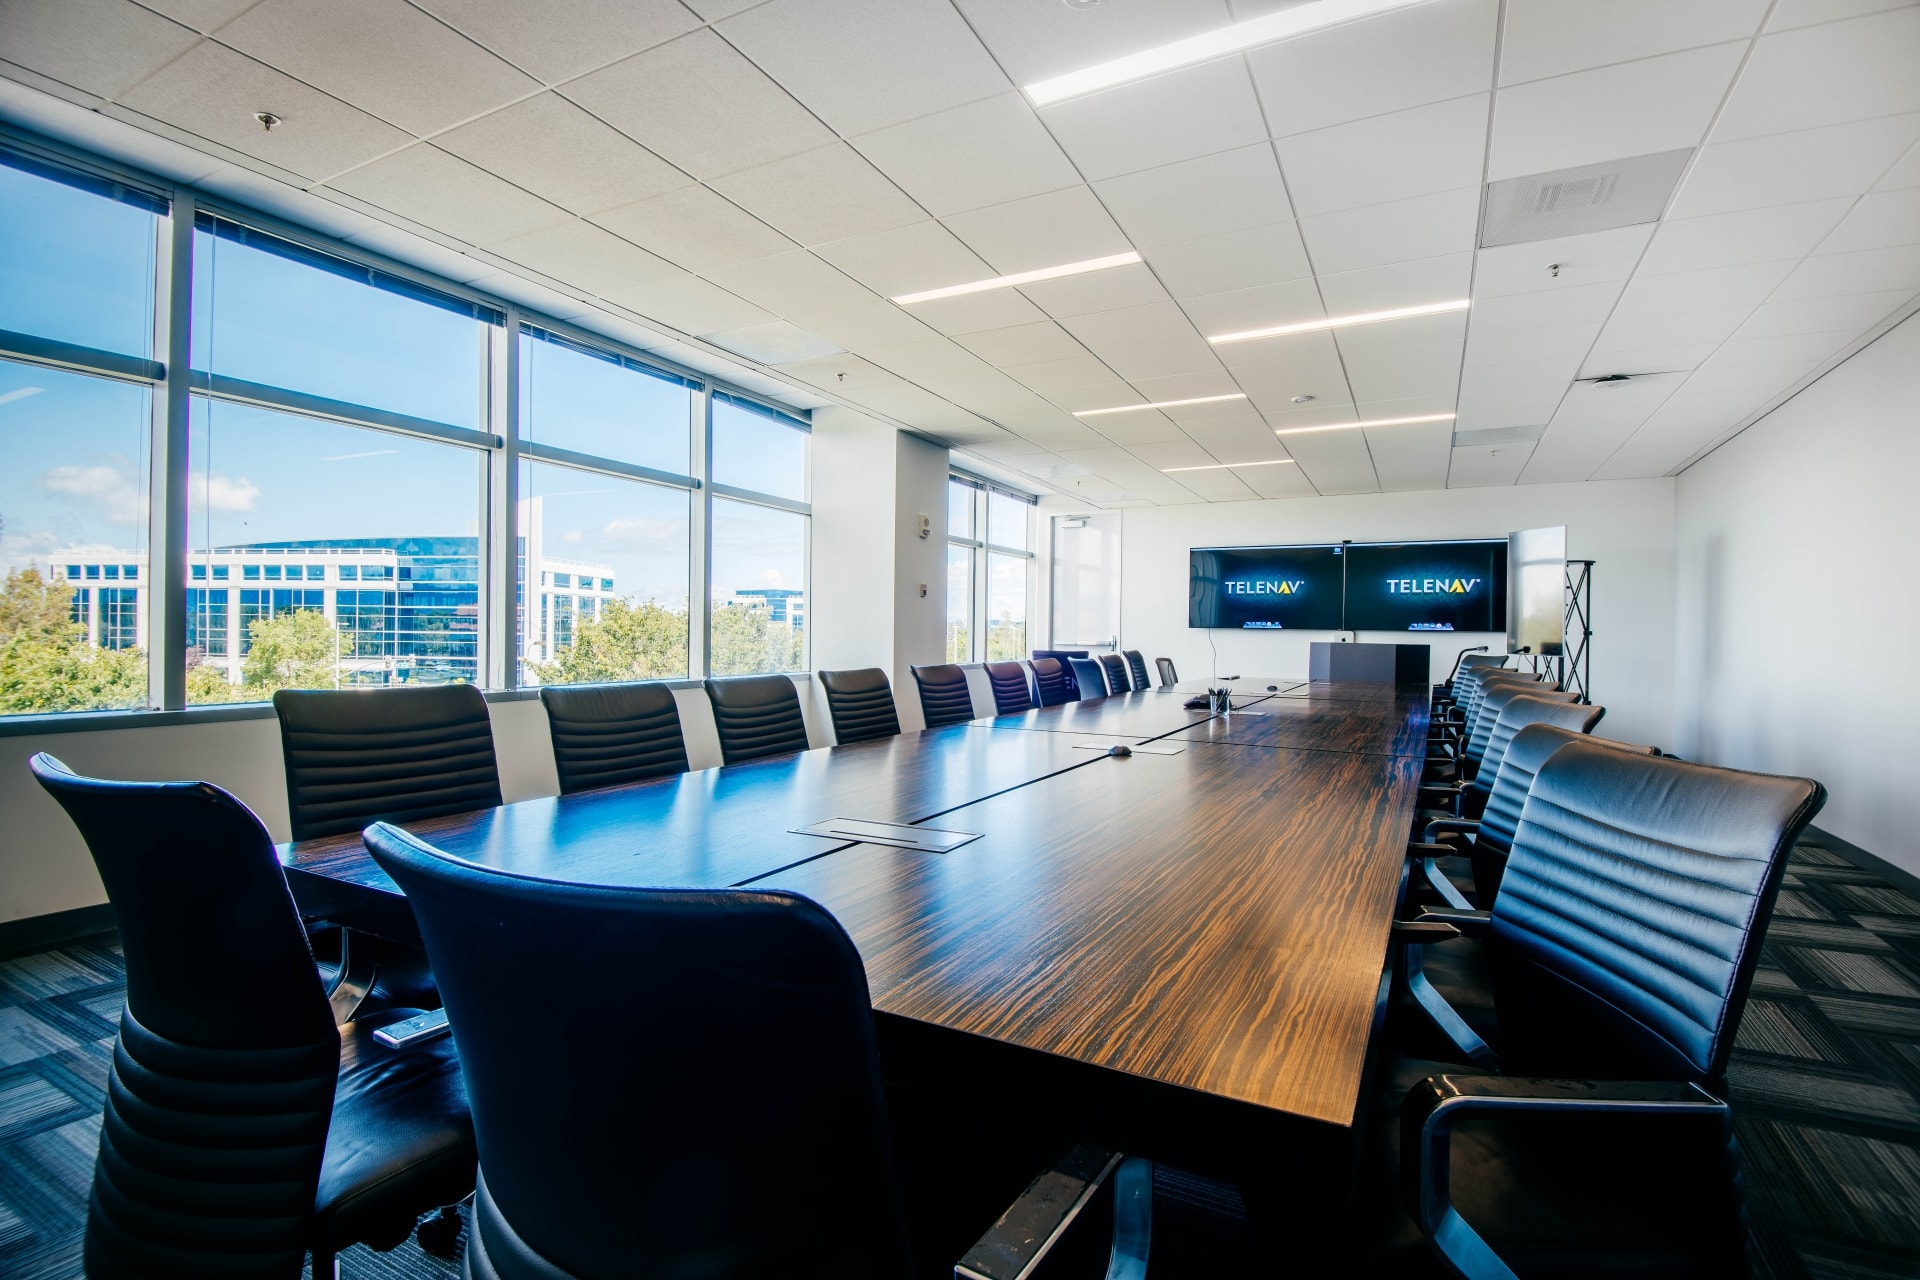 FaciliCorp manages design and construction of modern board room for Telenav in Silicon Valley